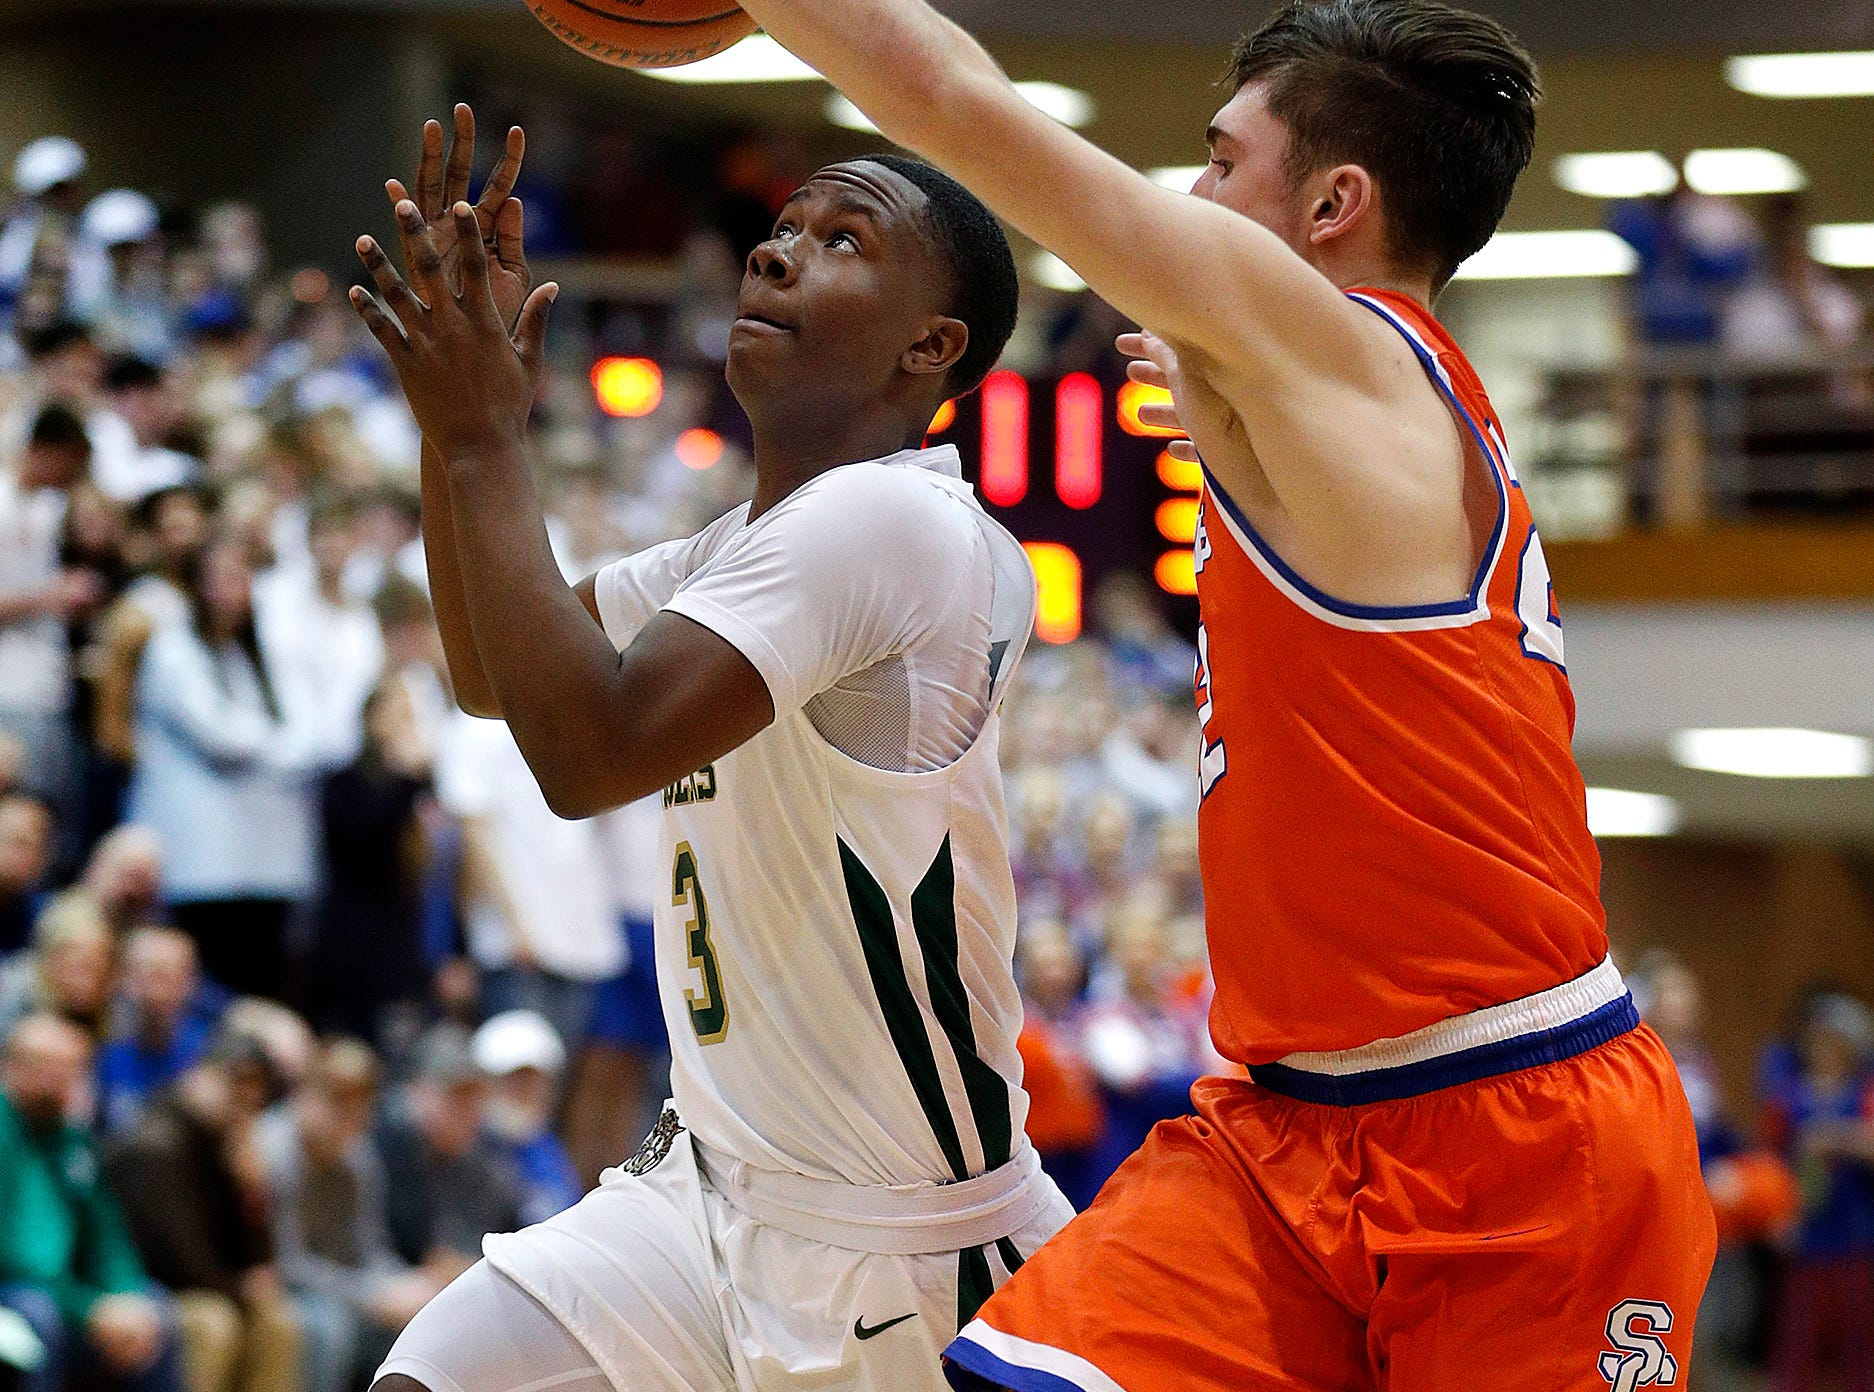 Crispus Attucks Tigers SinCere McMahon (3) looses control of the ball as he drives on Silver Creek Dragons Ty Kessinger (22) in the second half of their IHSAA boys' Semi-State basketball game at Seymour High School gym in Seymour IN, on Saturday, Mar. 16, 2019. The Silver Creek Dragons defeated the Crispus Attucks Tigers 72-69.